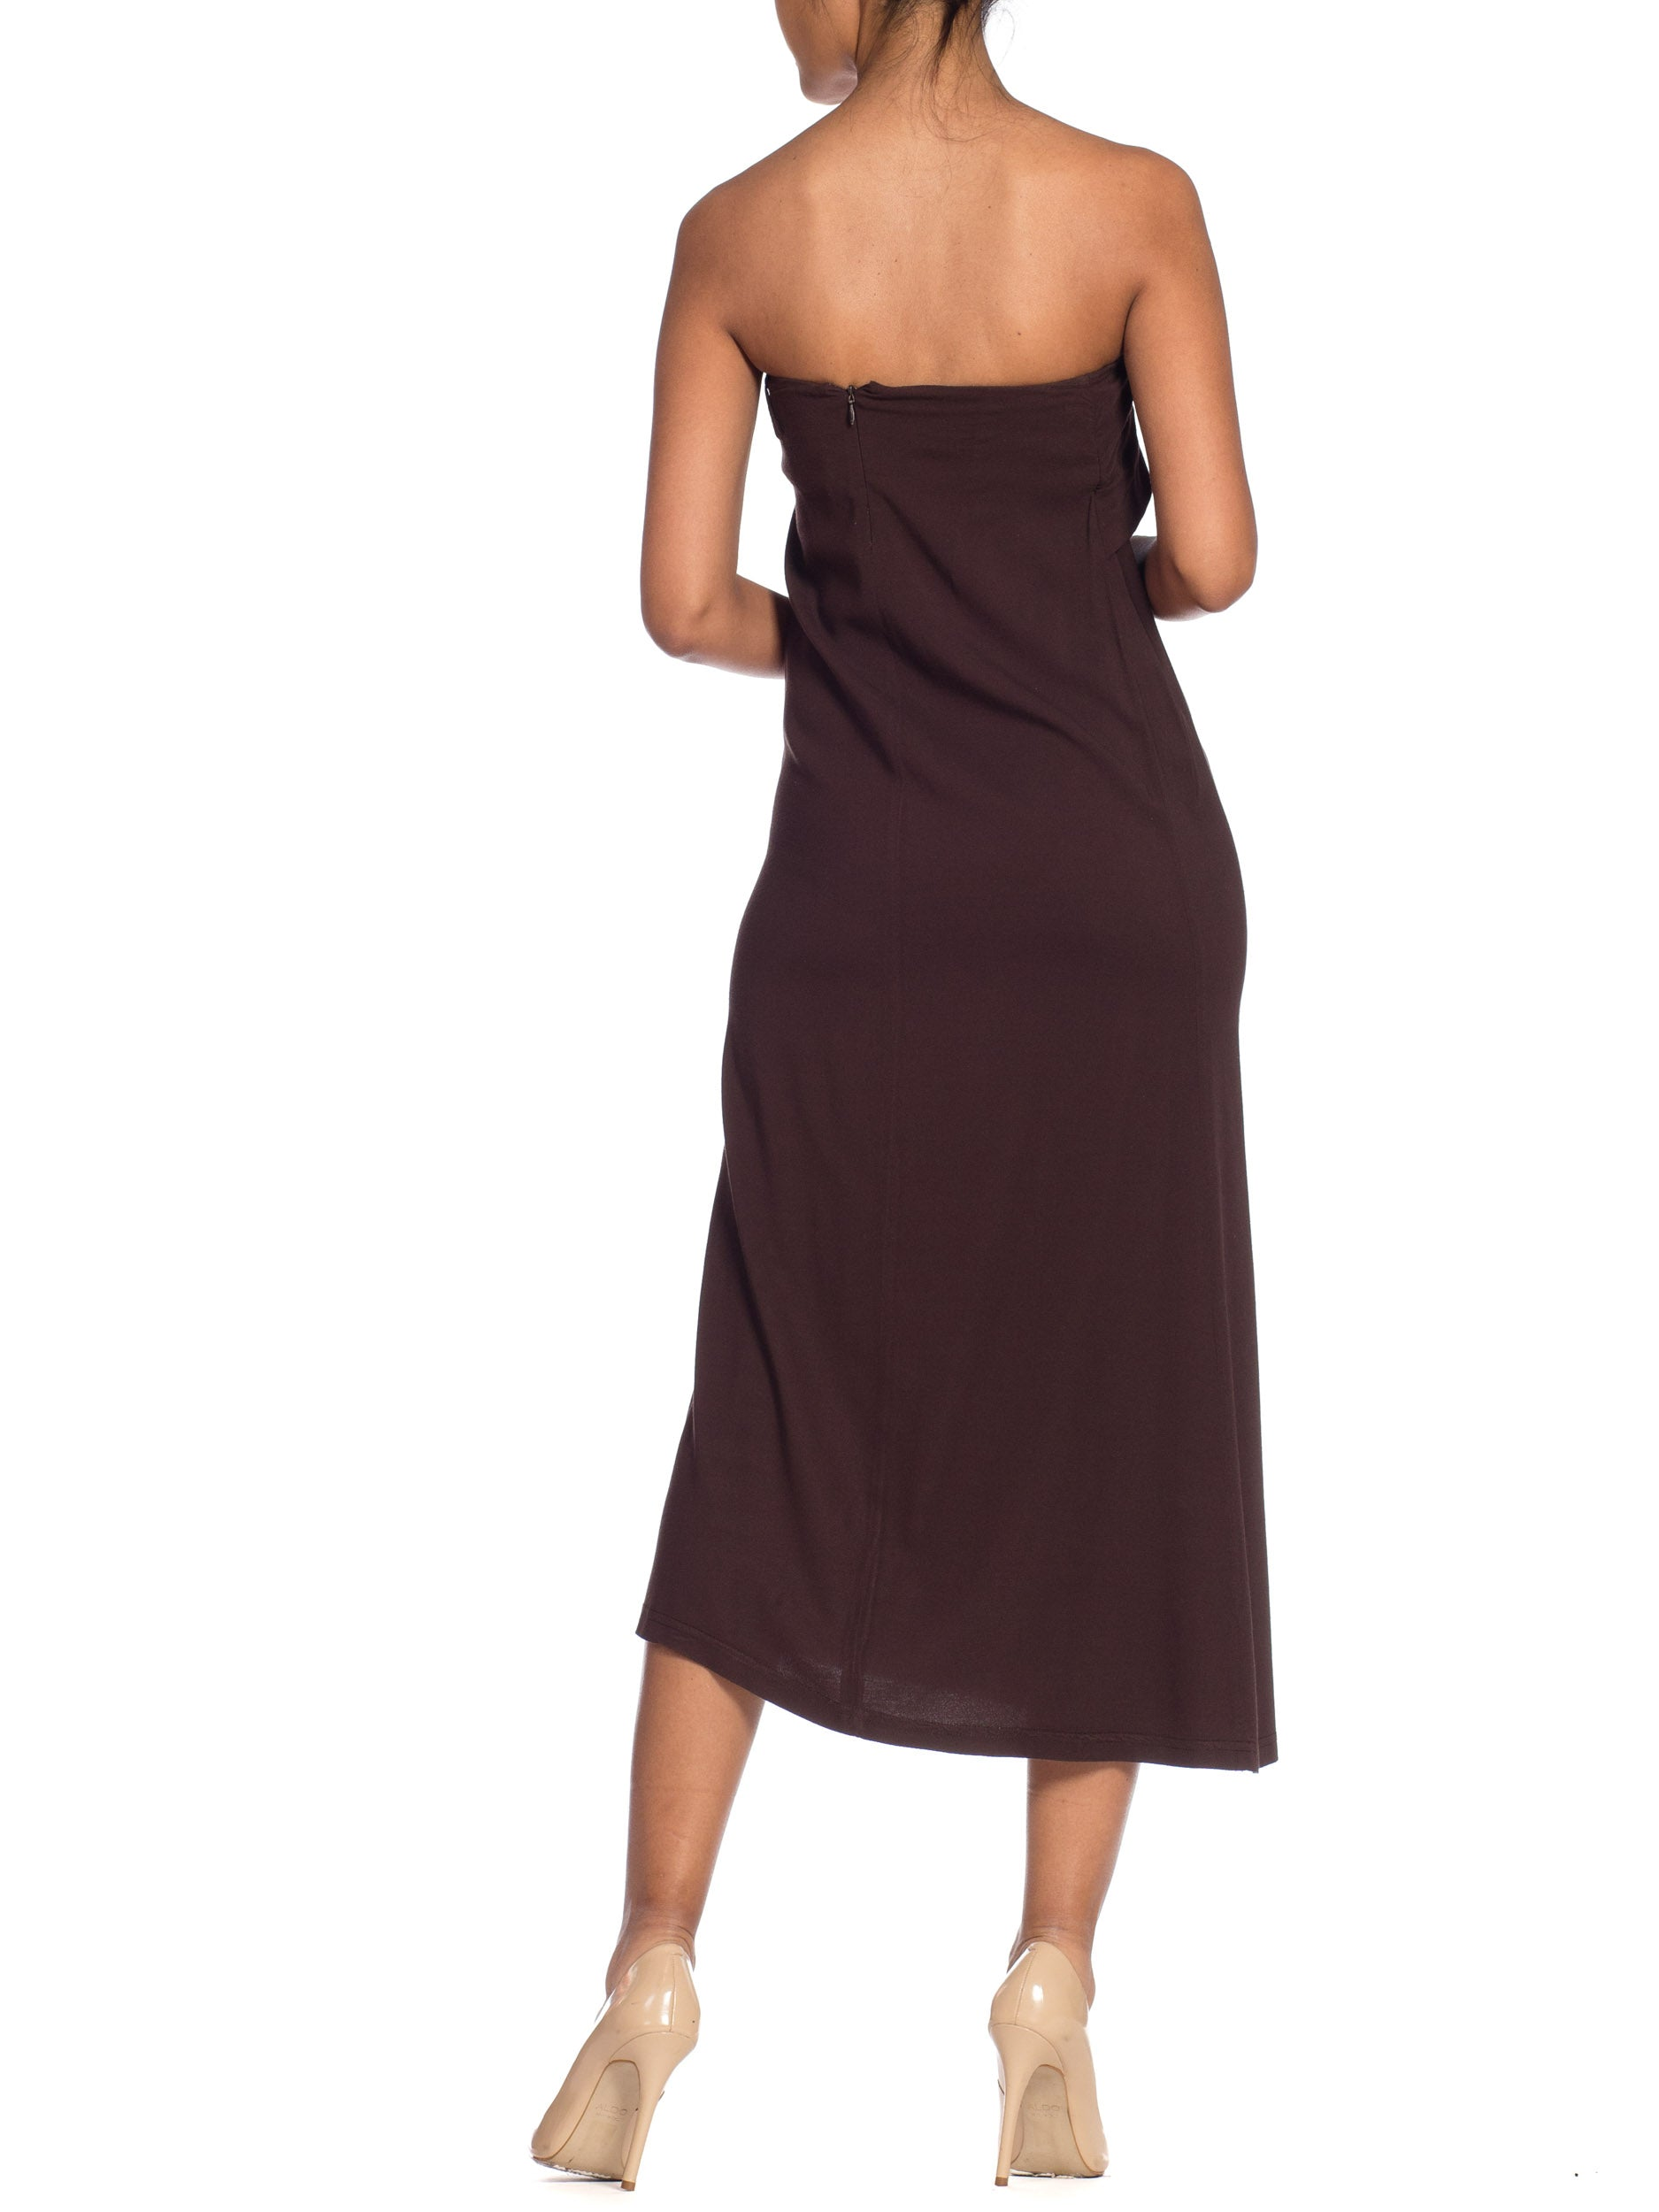 1990S Ann Demeulemeester Chocolate Brown Silk Stretch Minimal Strapless Dress | New York City | 24hrs- Free Return policy | US Free Shipping | Pre-owned Clothing | Sustainable fashion | Women Vintage Clothing | Vintage Clothing Store | Vintage Dresses | Strapless Dress